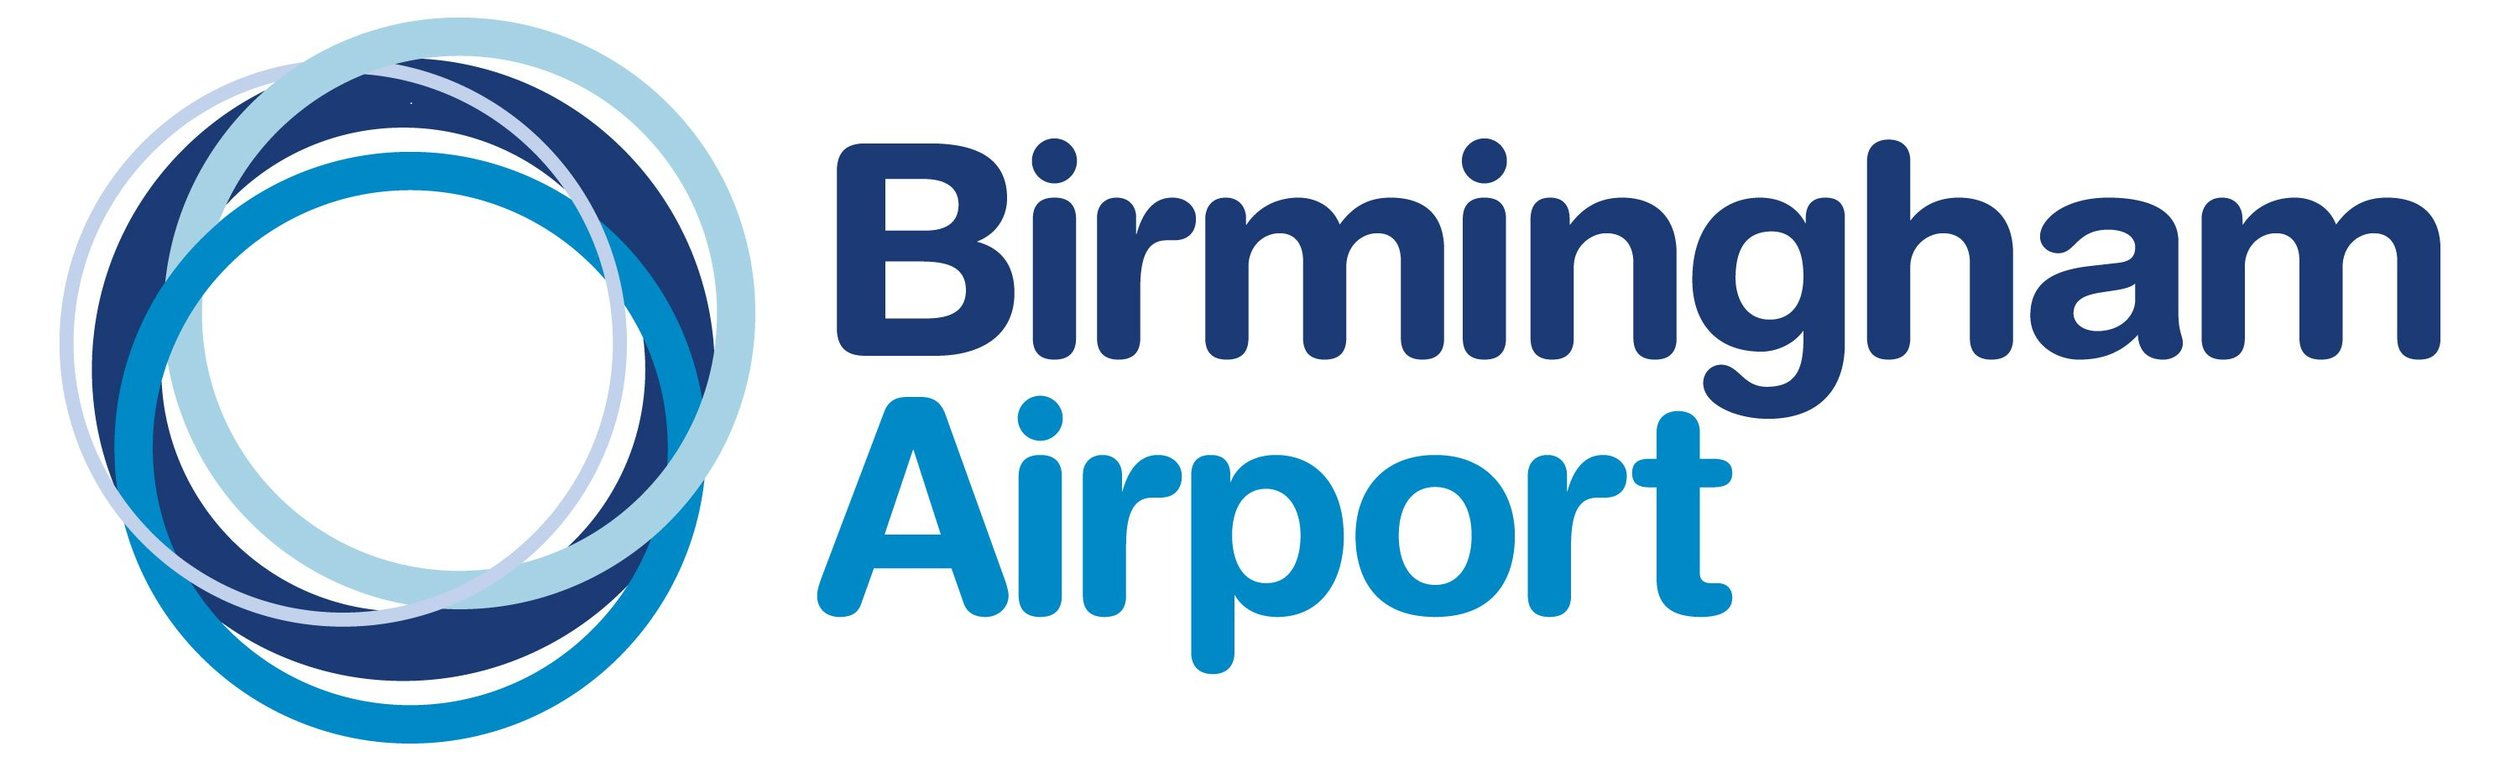 New Birmingham Airport logo  4th Nov 2010.JPG